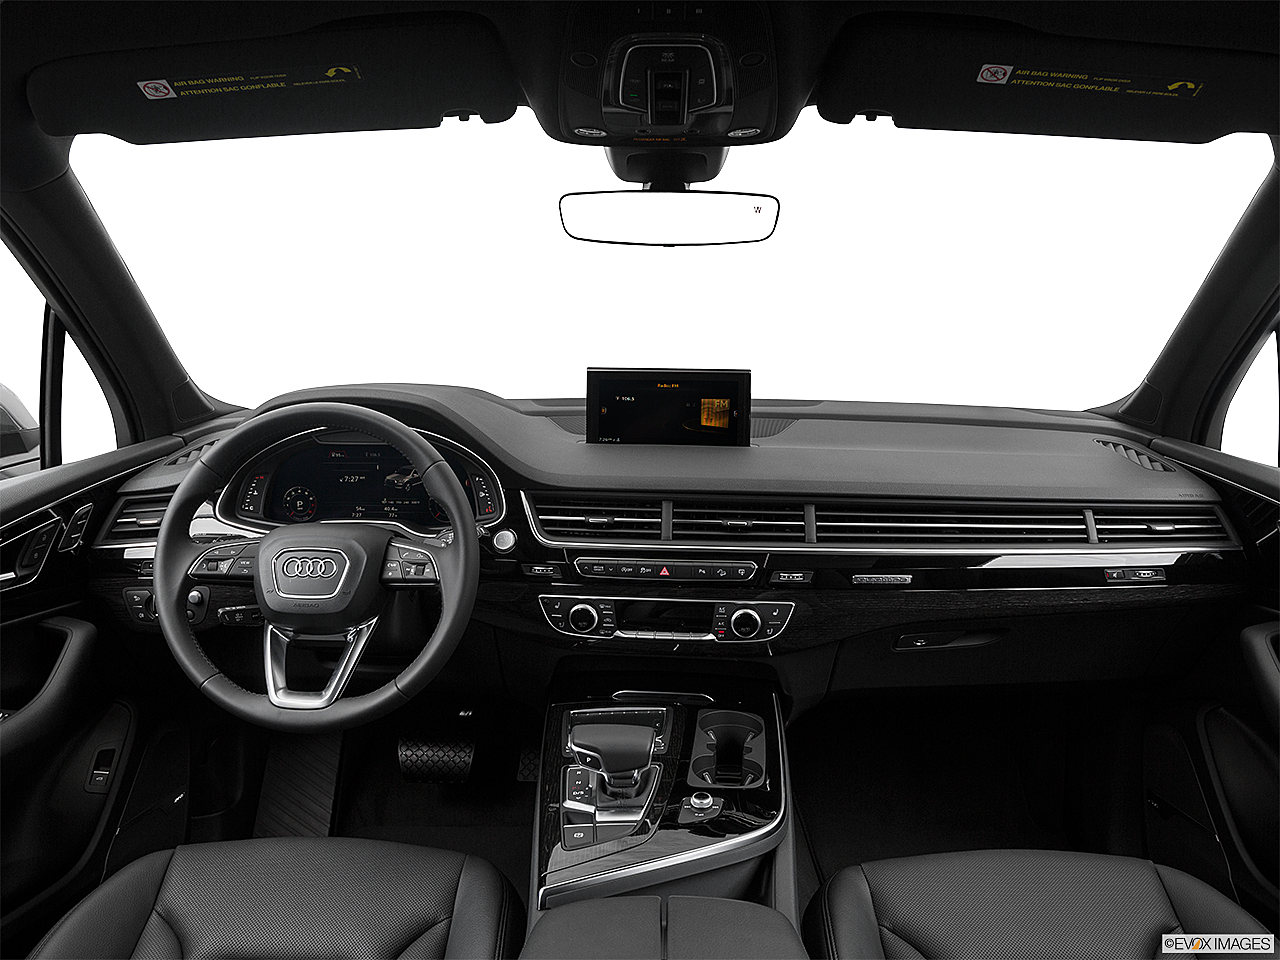 2018 Audi Q7 Prestige 3.0 TFSI, centered wide dash shot